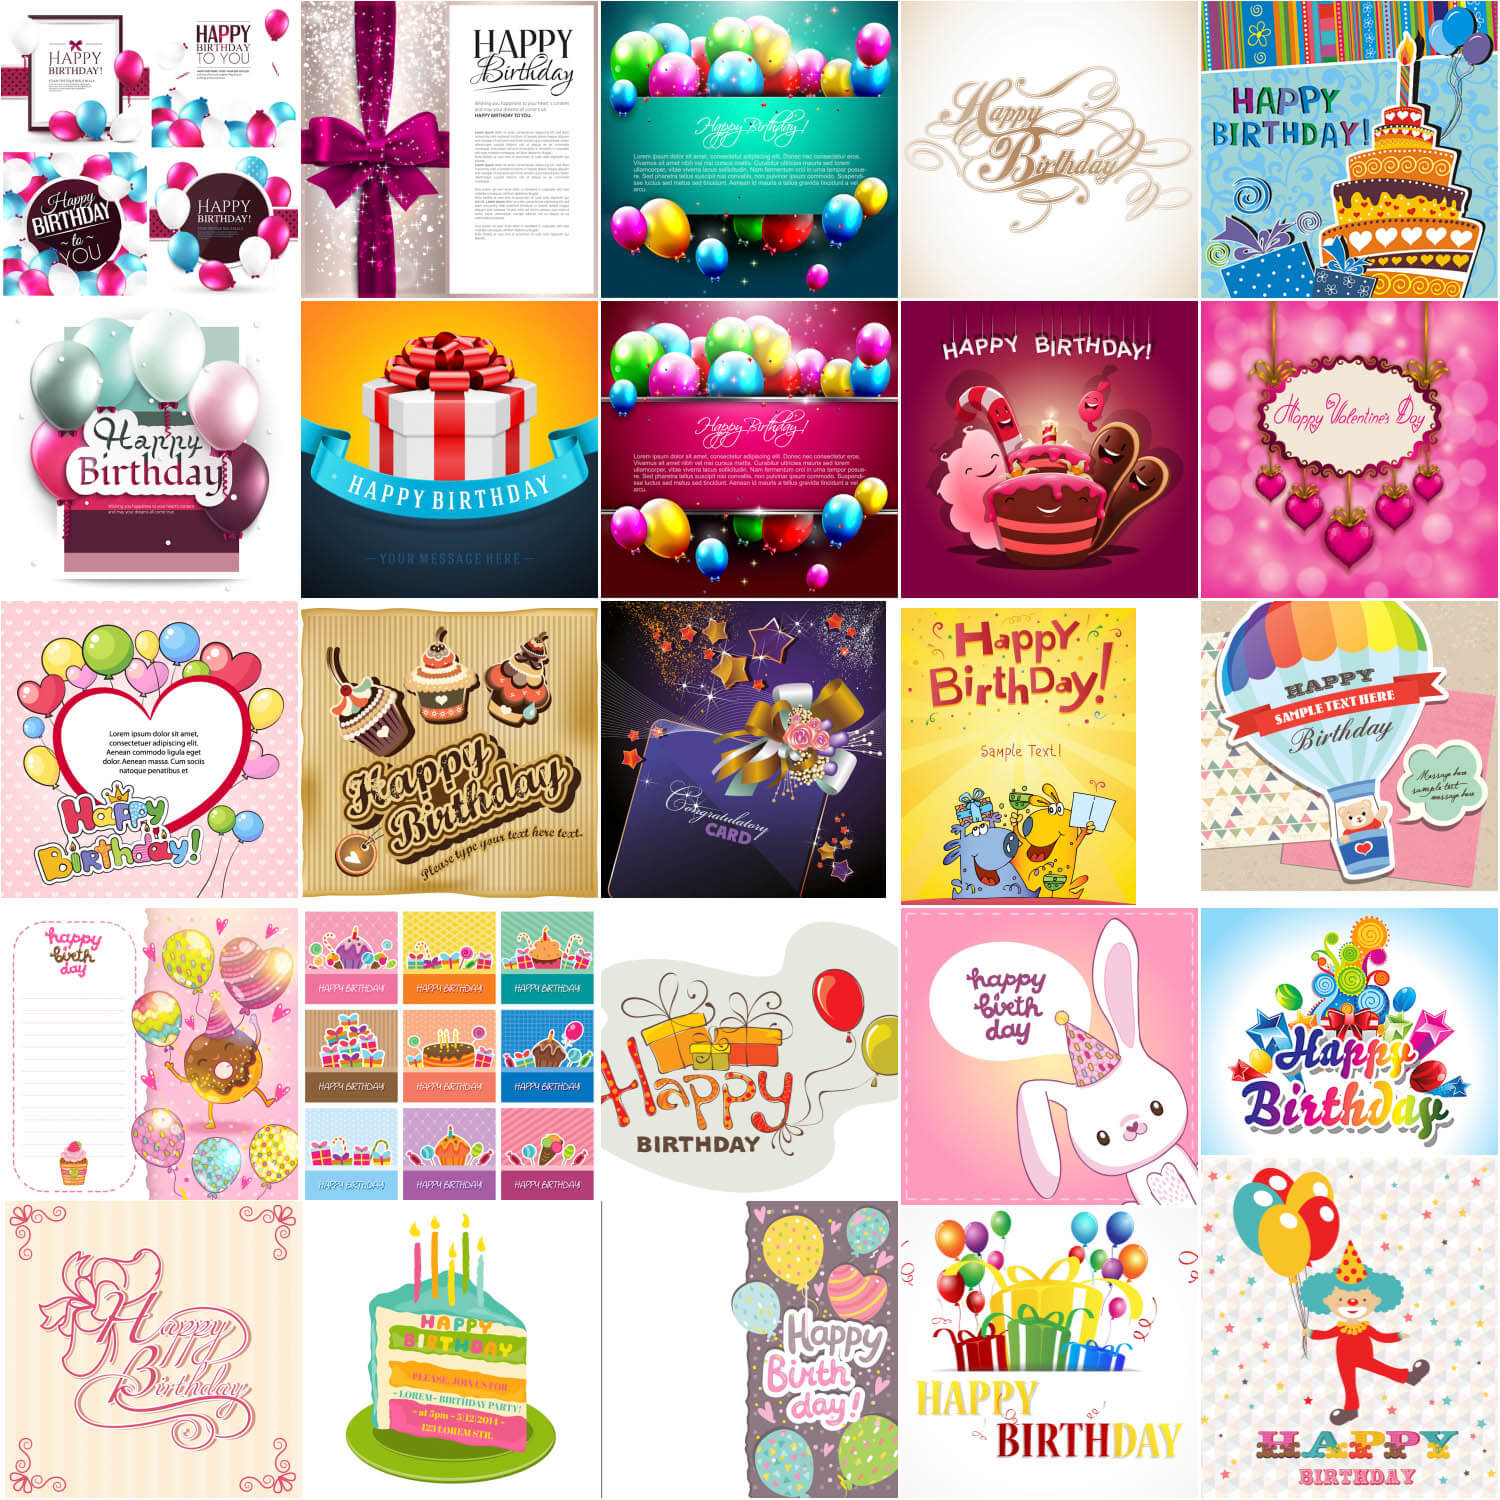 Happy Birthday templates Happy Birthday cards